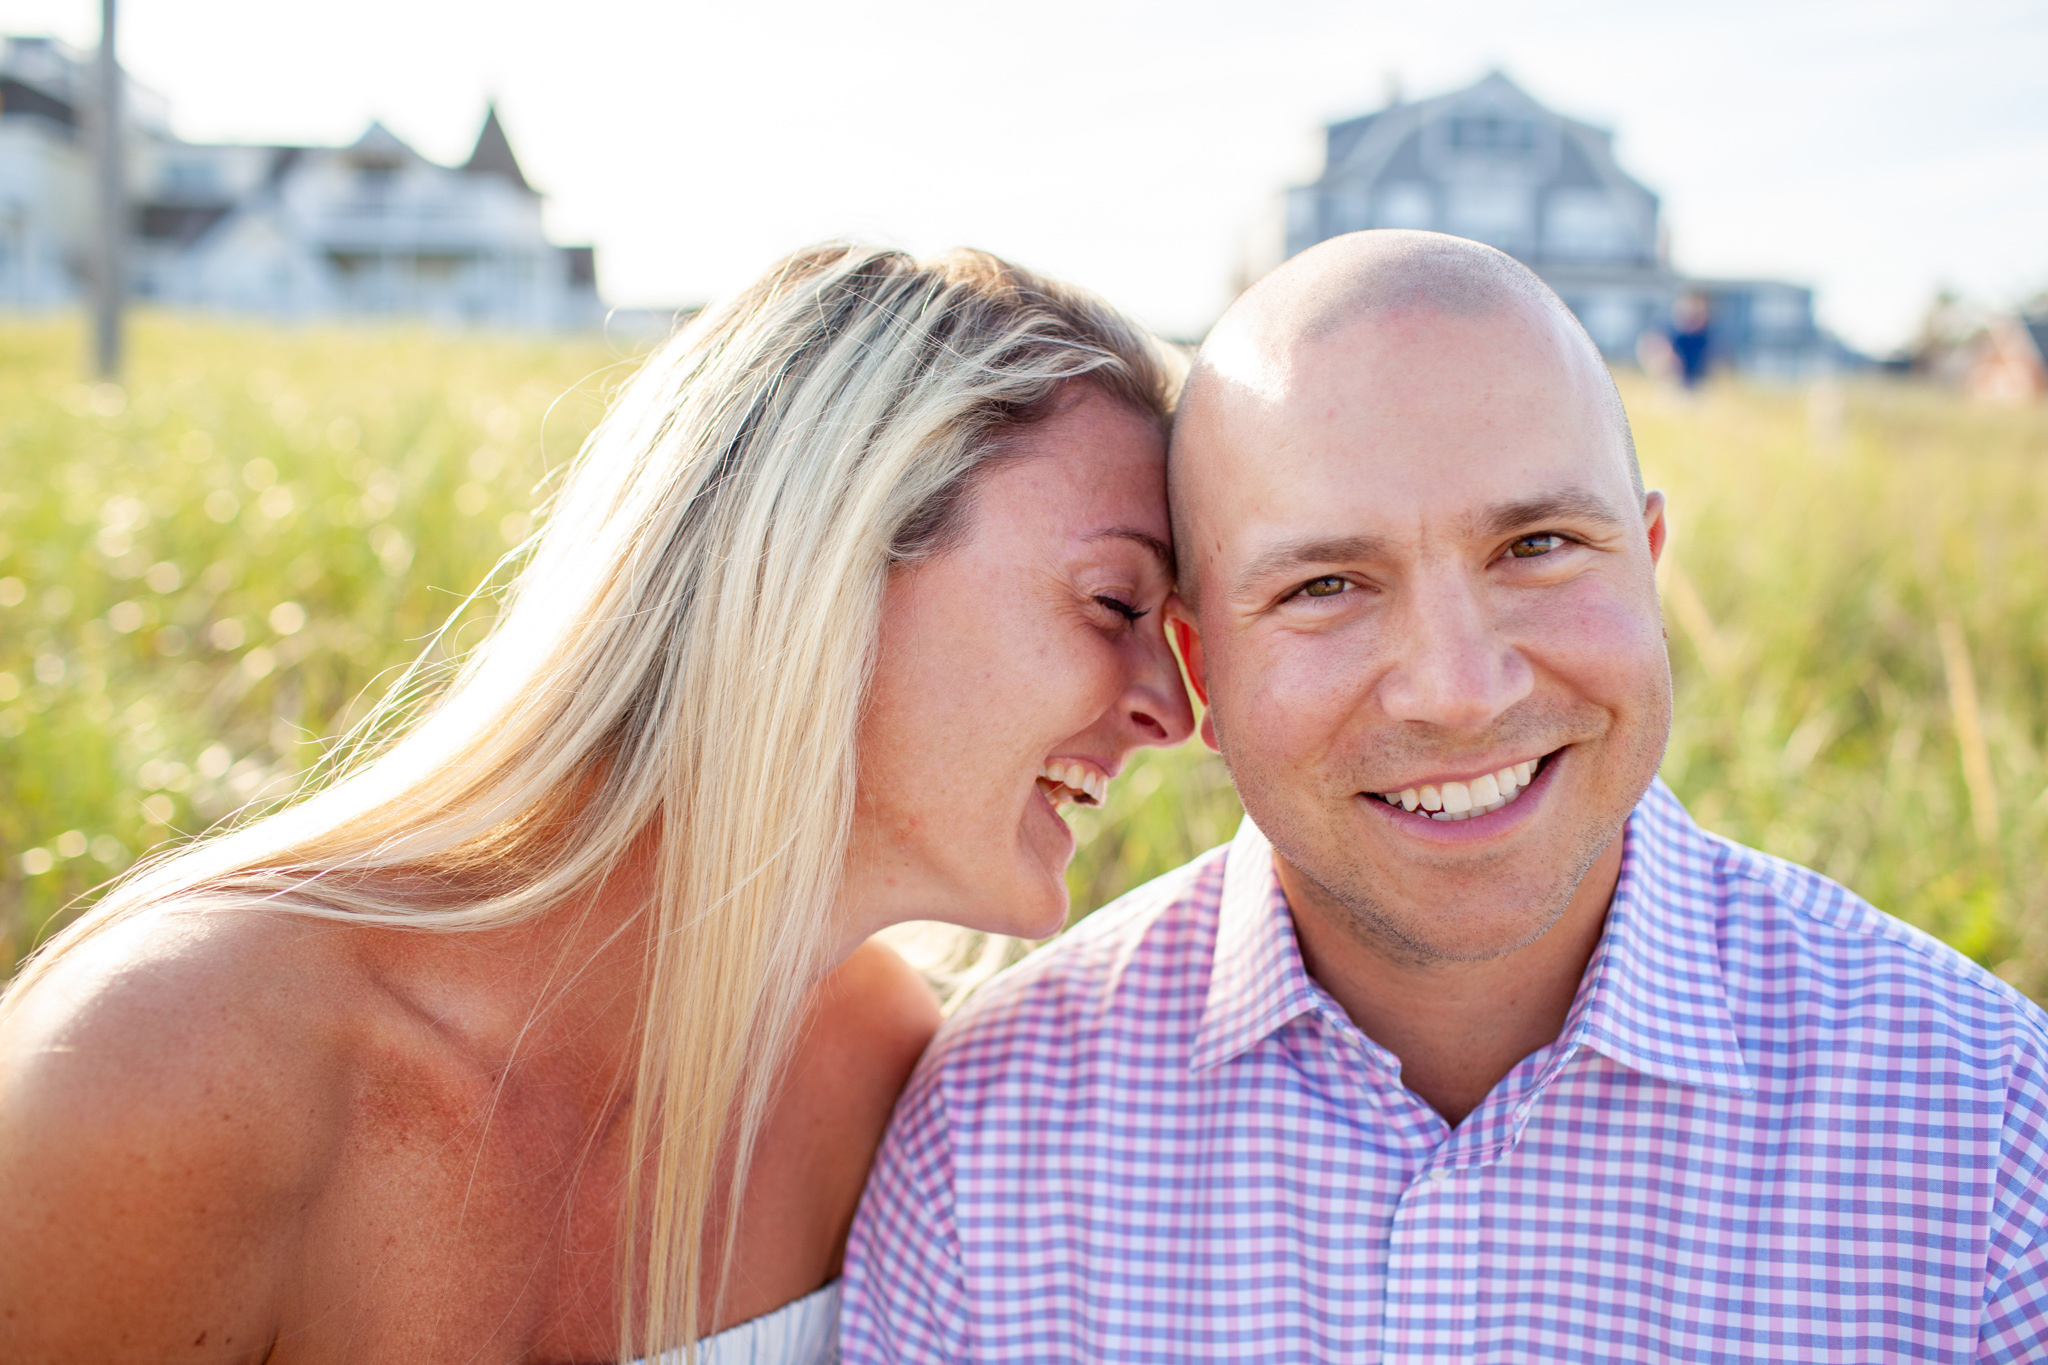 maine-beach-engagement-session-stepheneycollinsphotography-10.jpg